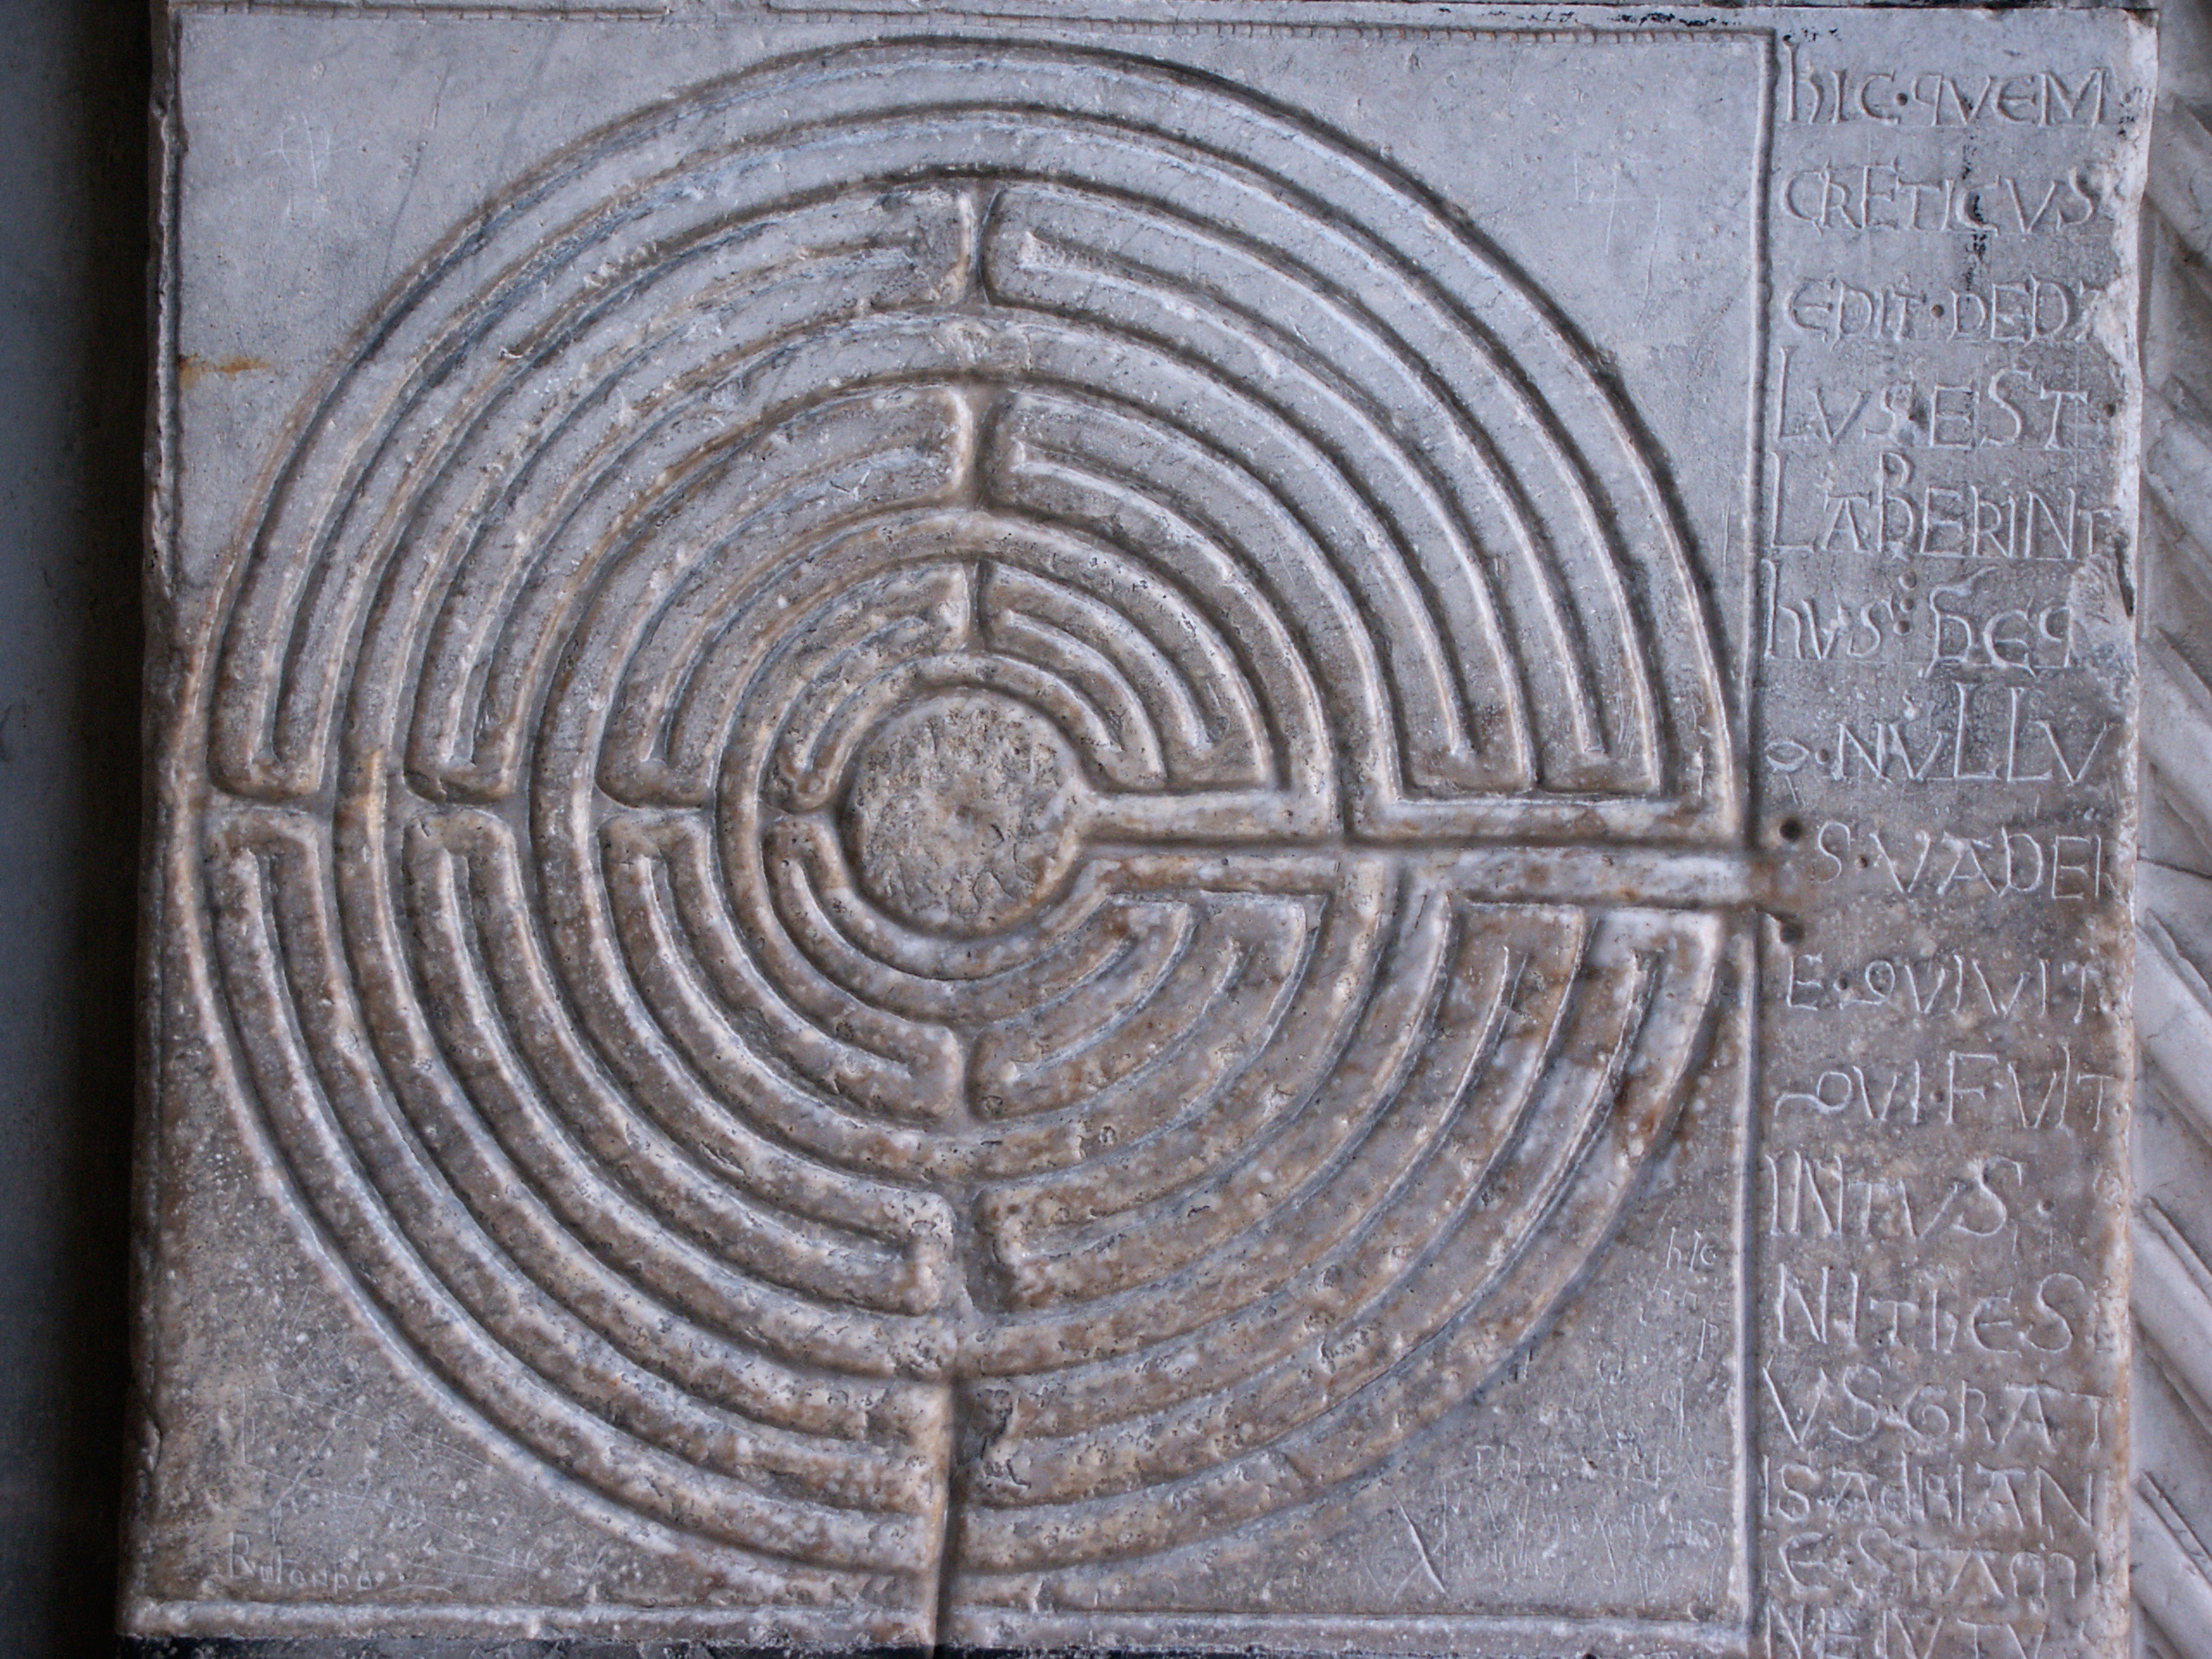 http://upload.wikimedia.org/wikipedia/commons/b/bd/Lucques-Labyrinthe.jpg?uselang=fr